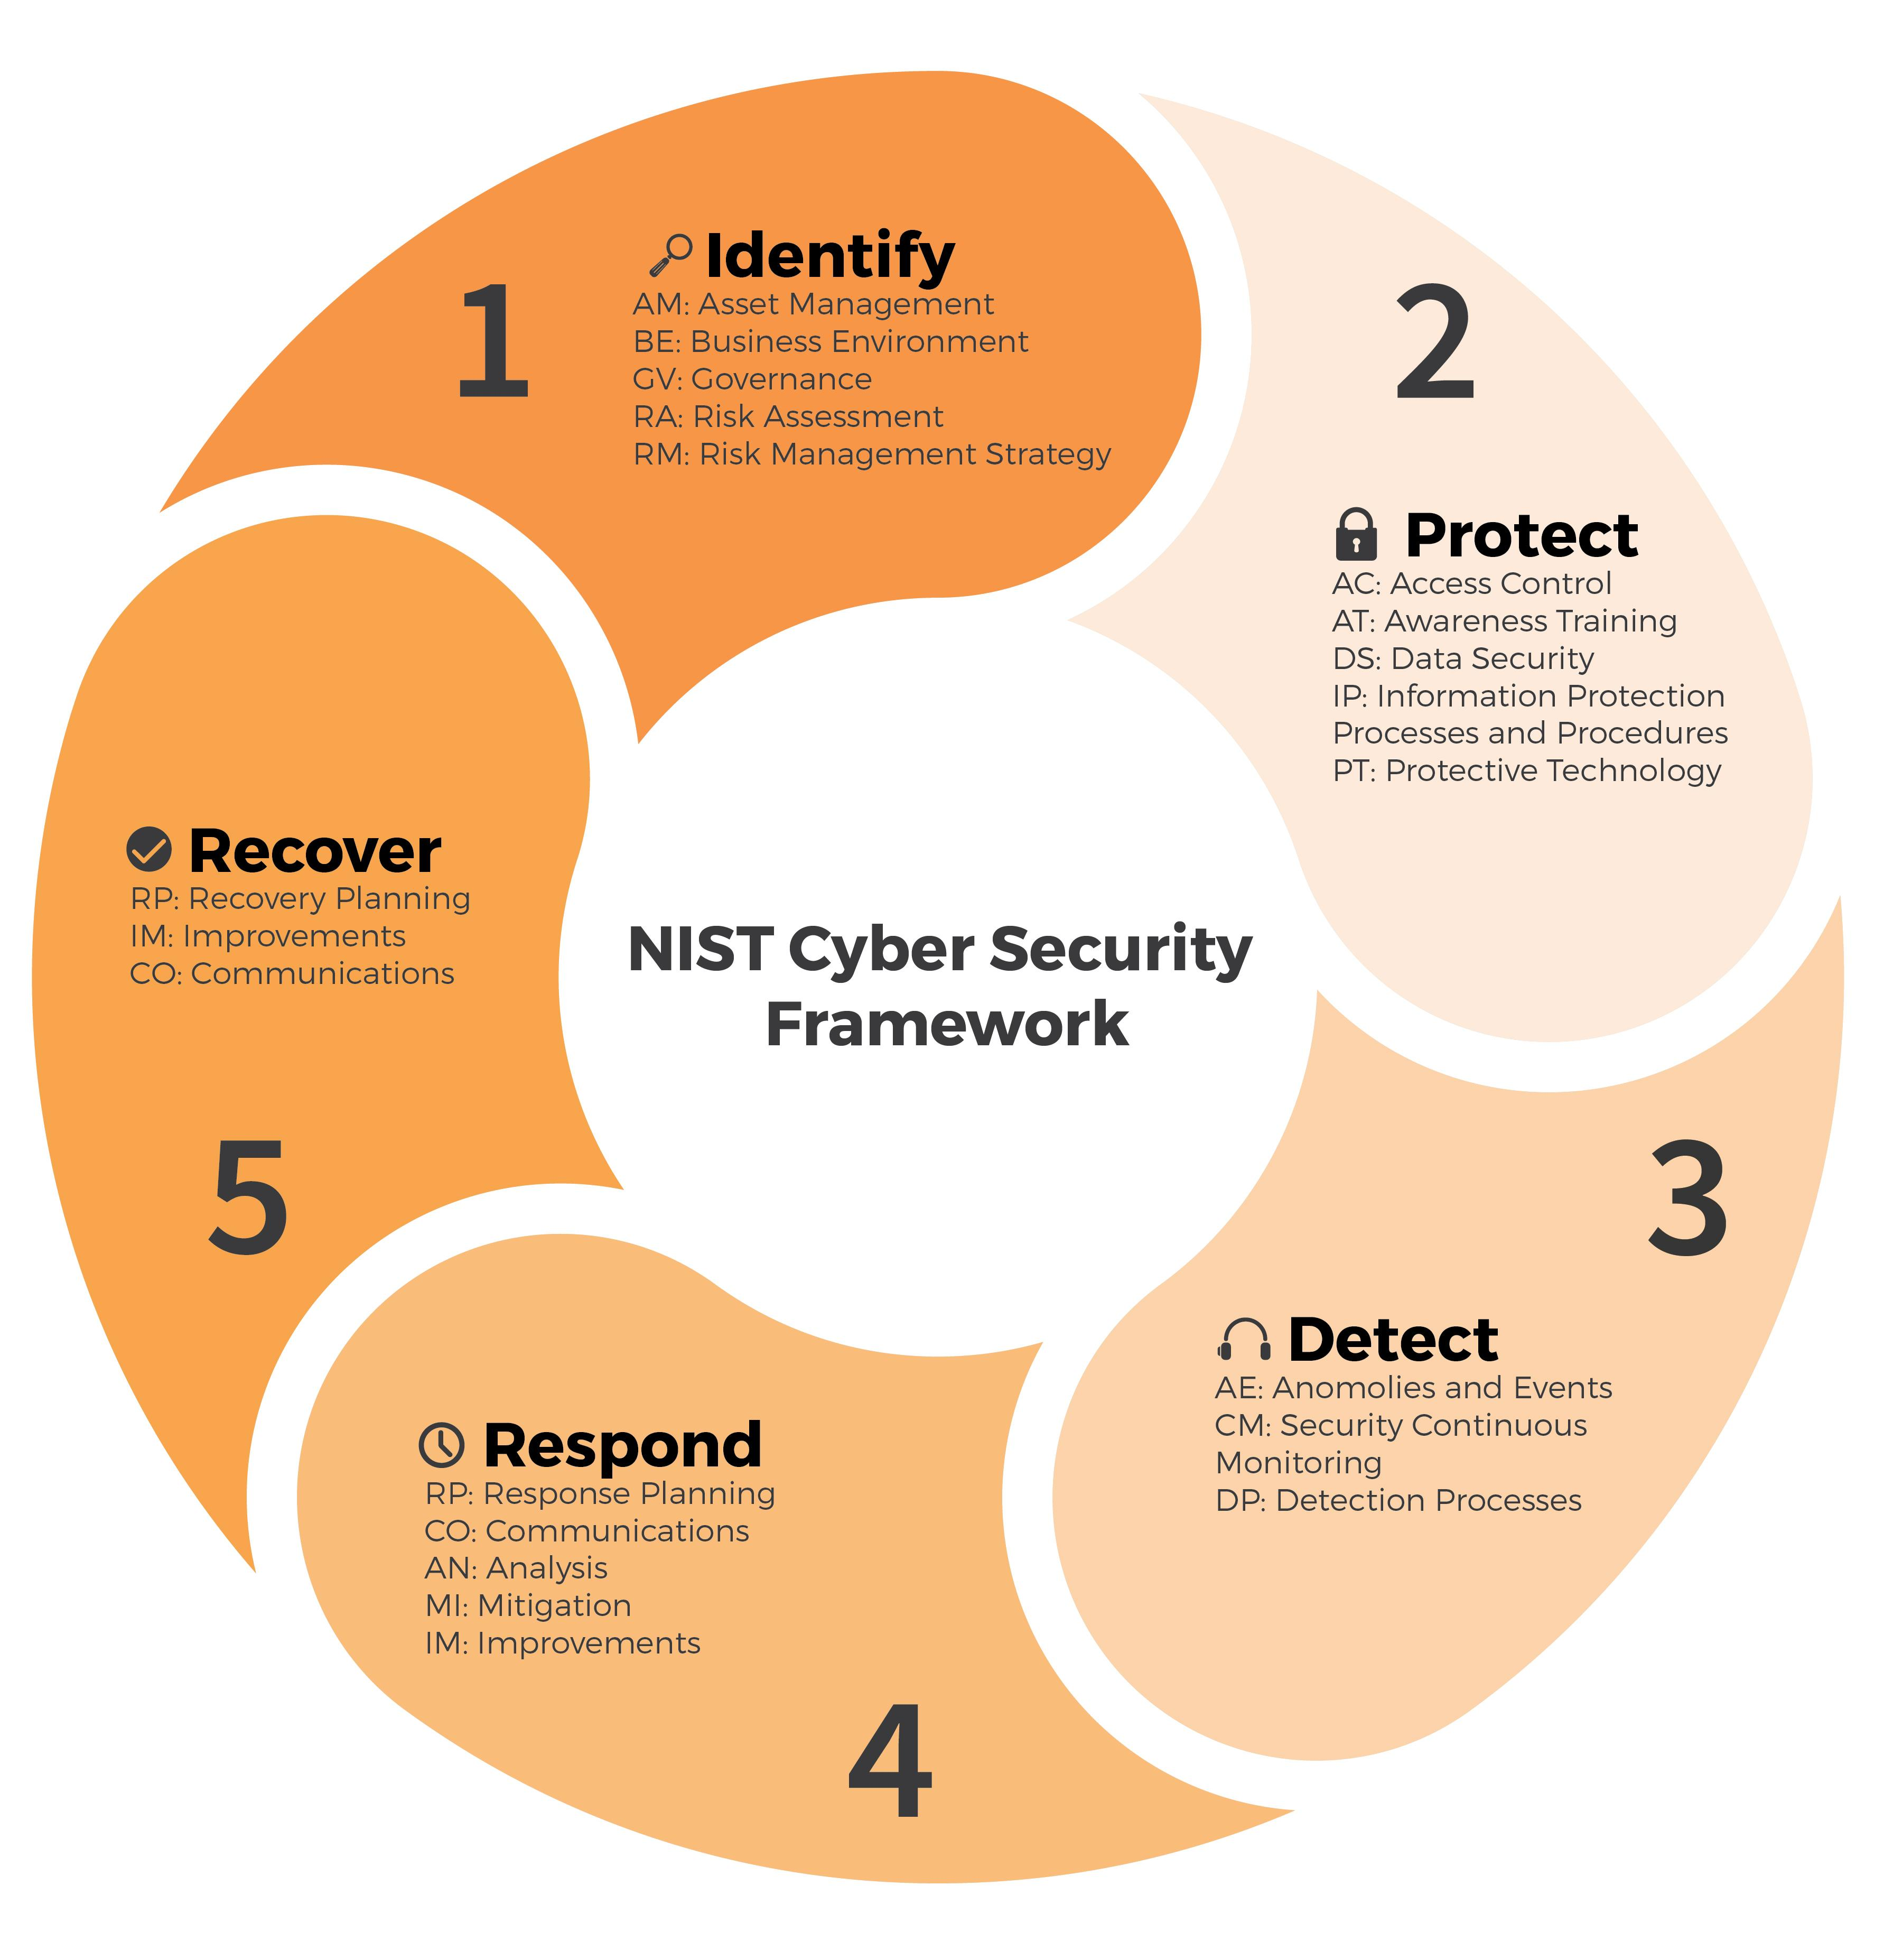 Pin By Alan Gravelle On Cyber Security Cybersecurity Framework Risk Management Cyber Security